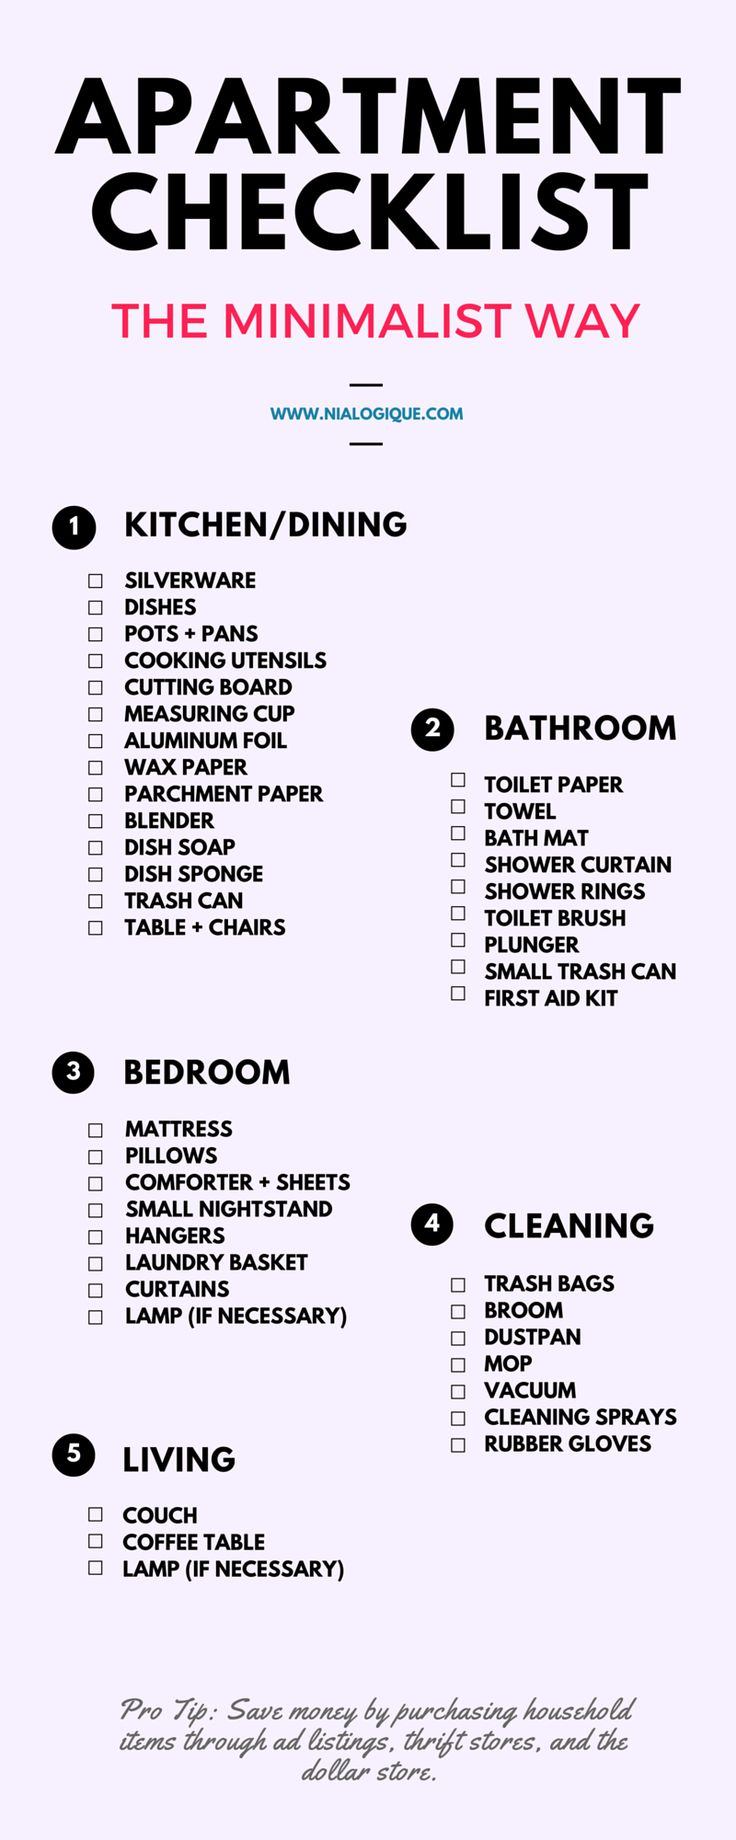 Minimalist Apartment Checklist | Check out this awesome, minimal infographic focus